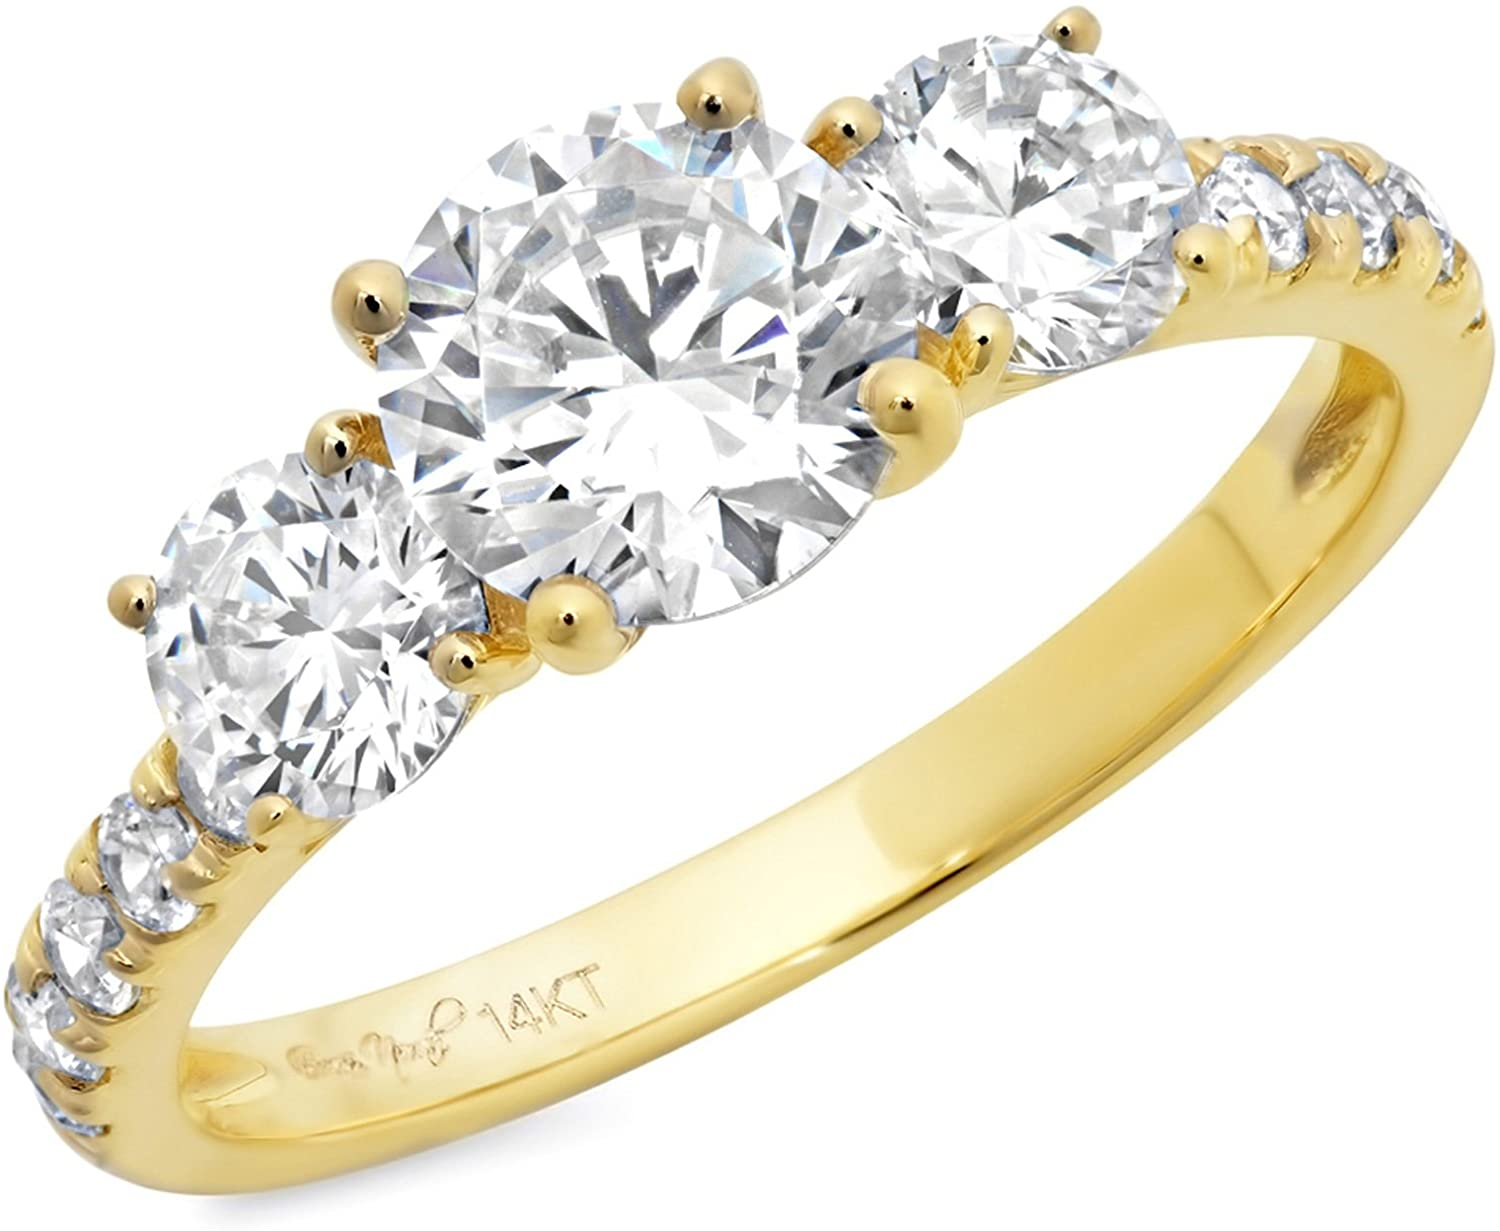 Simulated Diamond 2.10 Ct Round Cut Engagement Wedding Bridal Three Stone Ring Cubic Zirconia 14K Yellow Gold Ring For Women - Clara Pucci